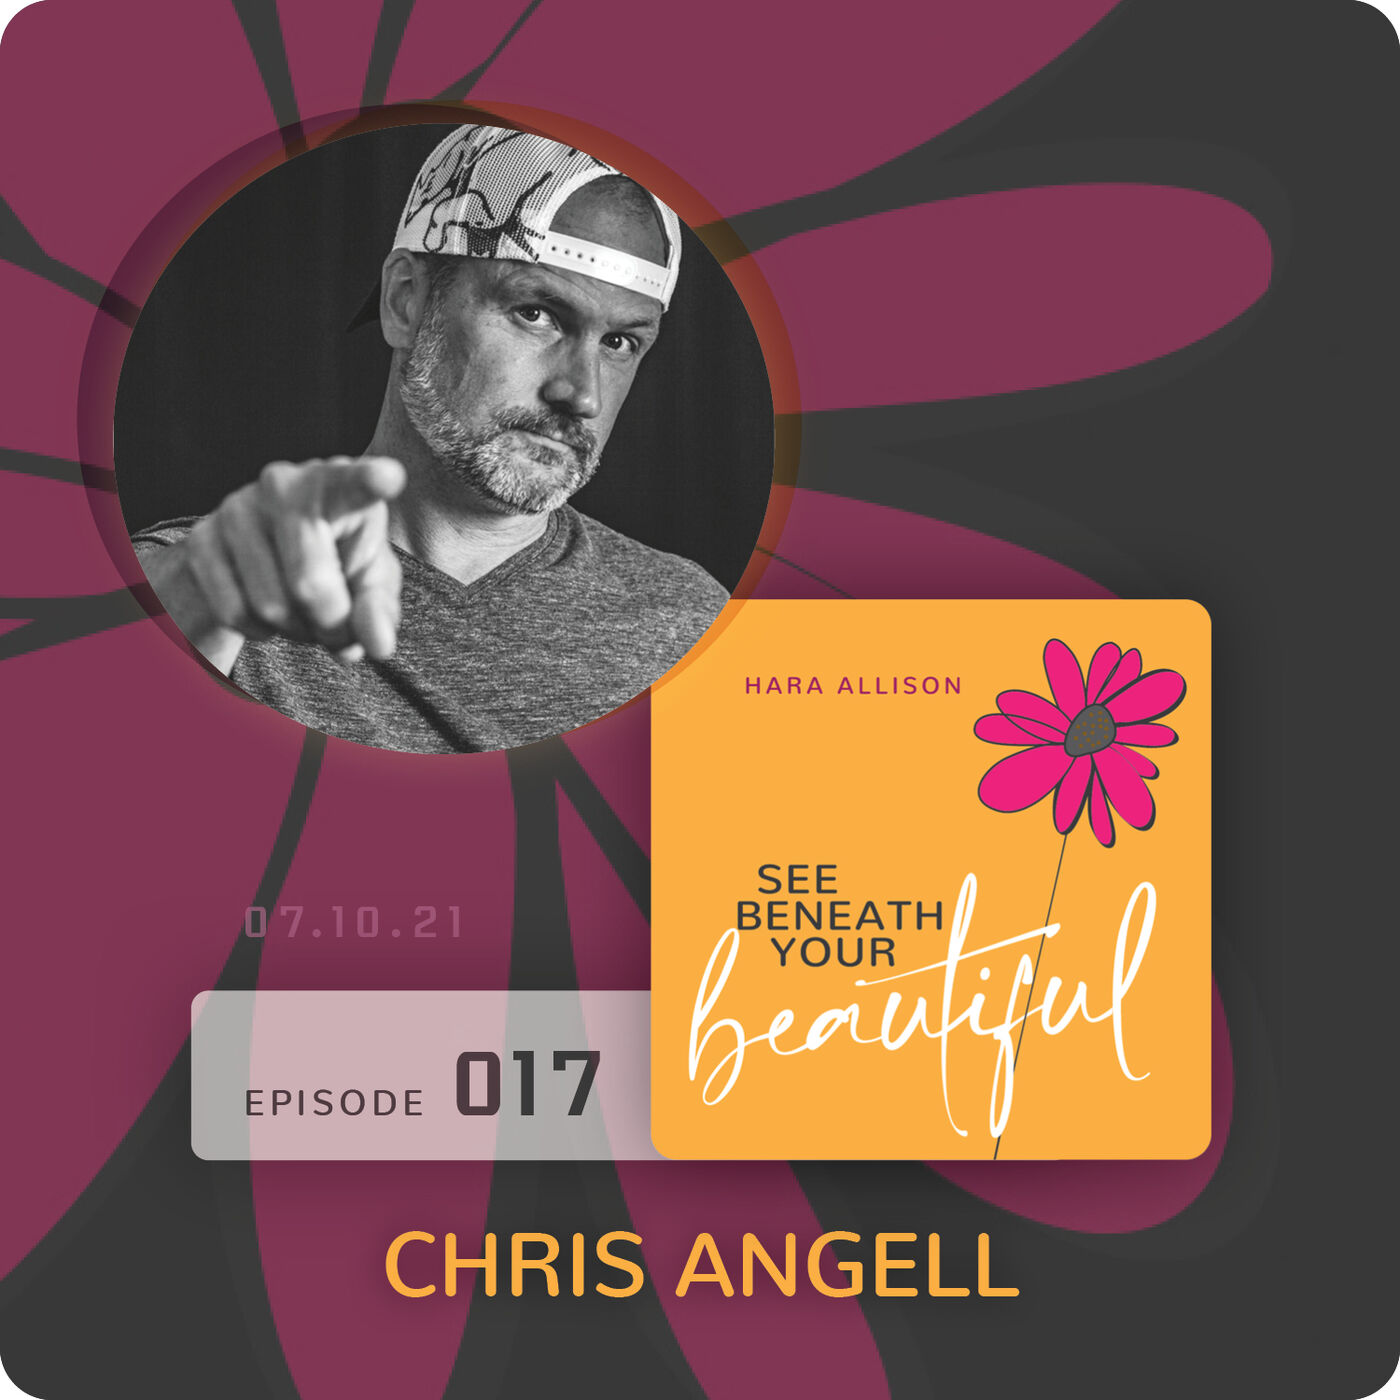 017. Chris Angell discusses loving humans (except for 6th graders), spiral dynamics, surrendering, and being a professional friend, a perpetual seeker, and a promoter of authenticity